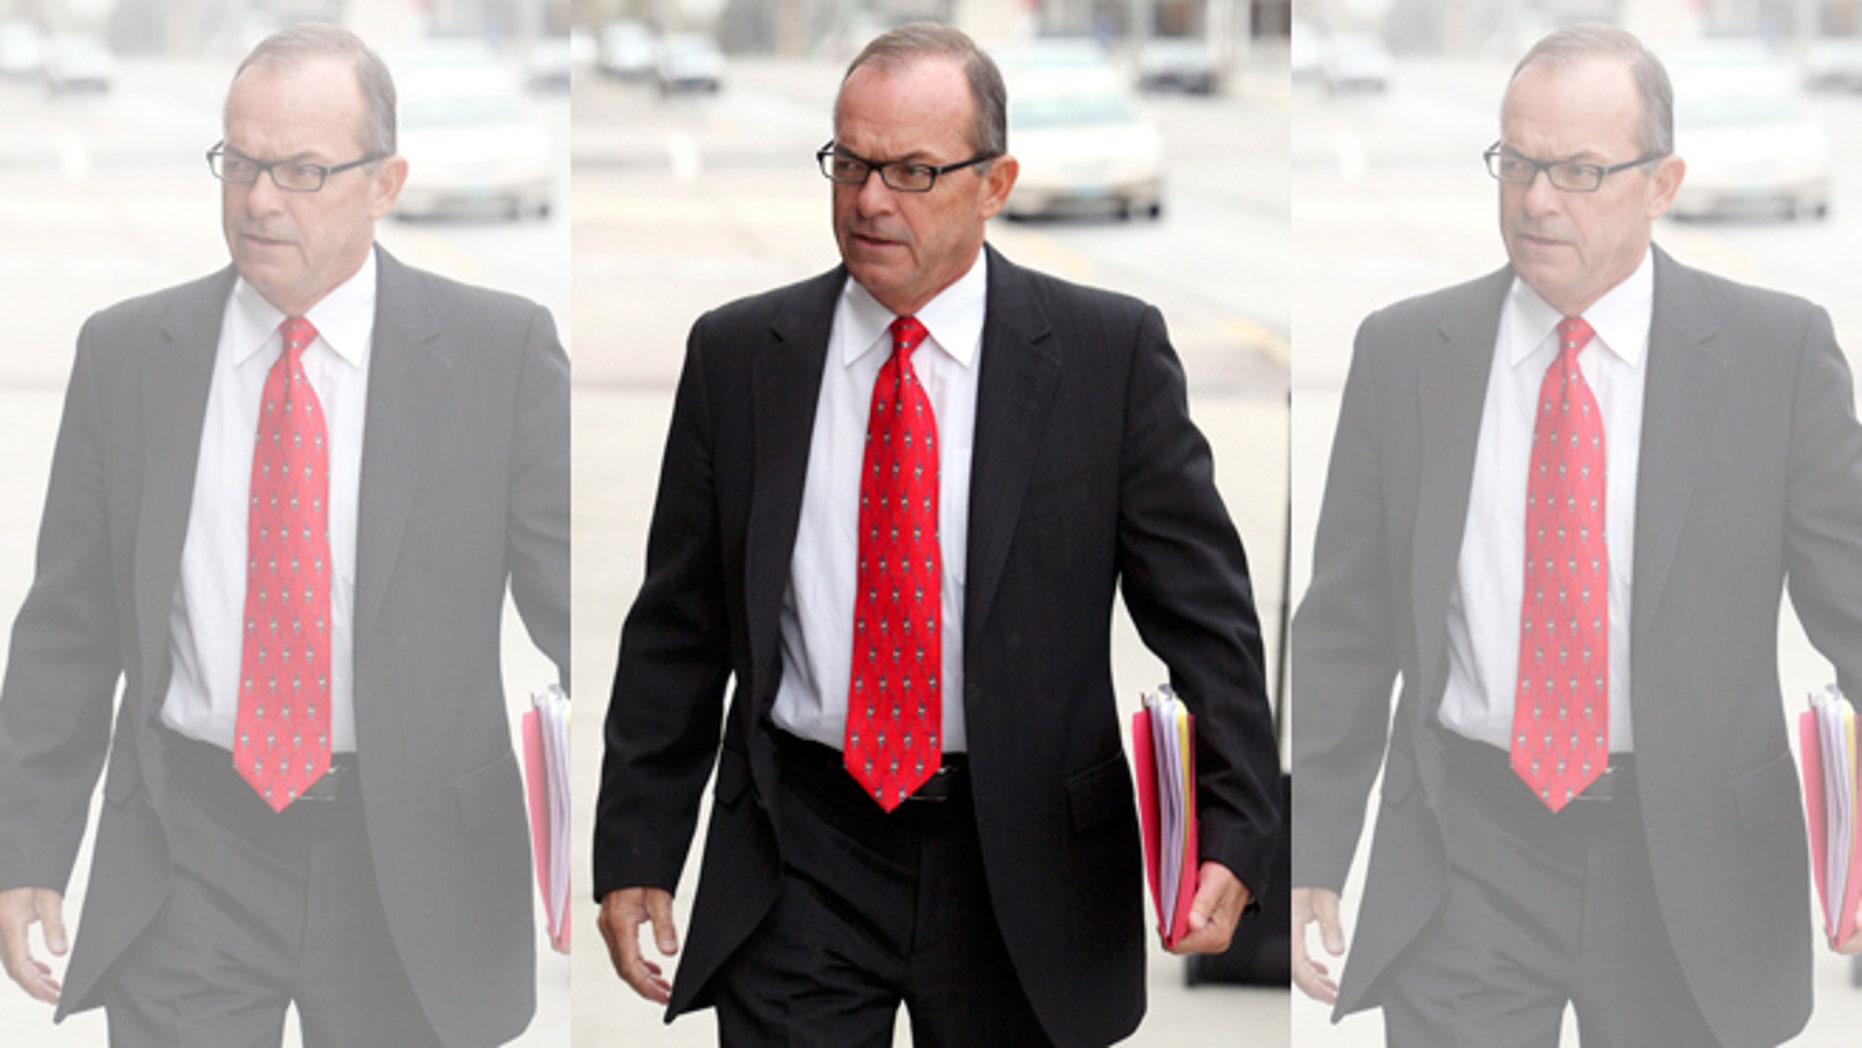 FILE - In this April 29, 2009, file photo, Tim Blixseth arrives at the federal courthouse in Missoula, Mont. Montana revenue officials say the one-time billionaire and Yellowstone Club founder owes almost $74 million in back taxes, penalties and interest, primarily on a $375 million loan to the luxury resort near Big Sky that he diverted for personal use. Department of Revenue officials announced Tuesday, March 24, 2015, that a tax board had sided against the real estate mogul in a series of recent rulings after Blixseth challenged the stateâs tax claims. Blixseth says he will appeal the tax board decisions in state court. (AP Photo/Mike Albans, File)